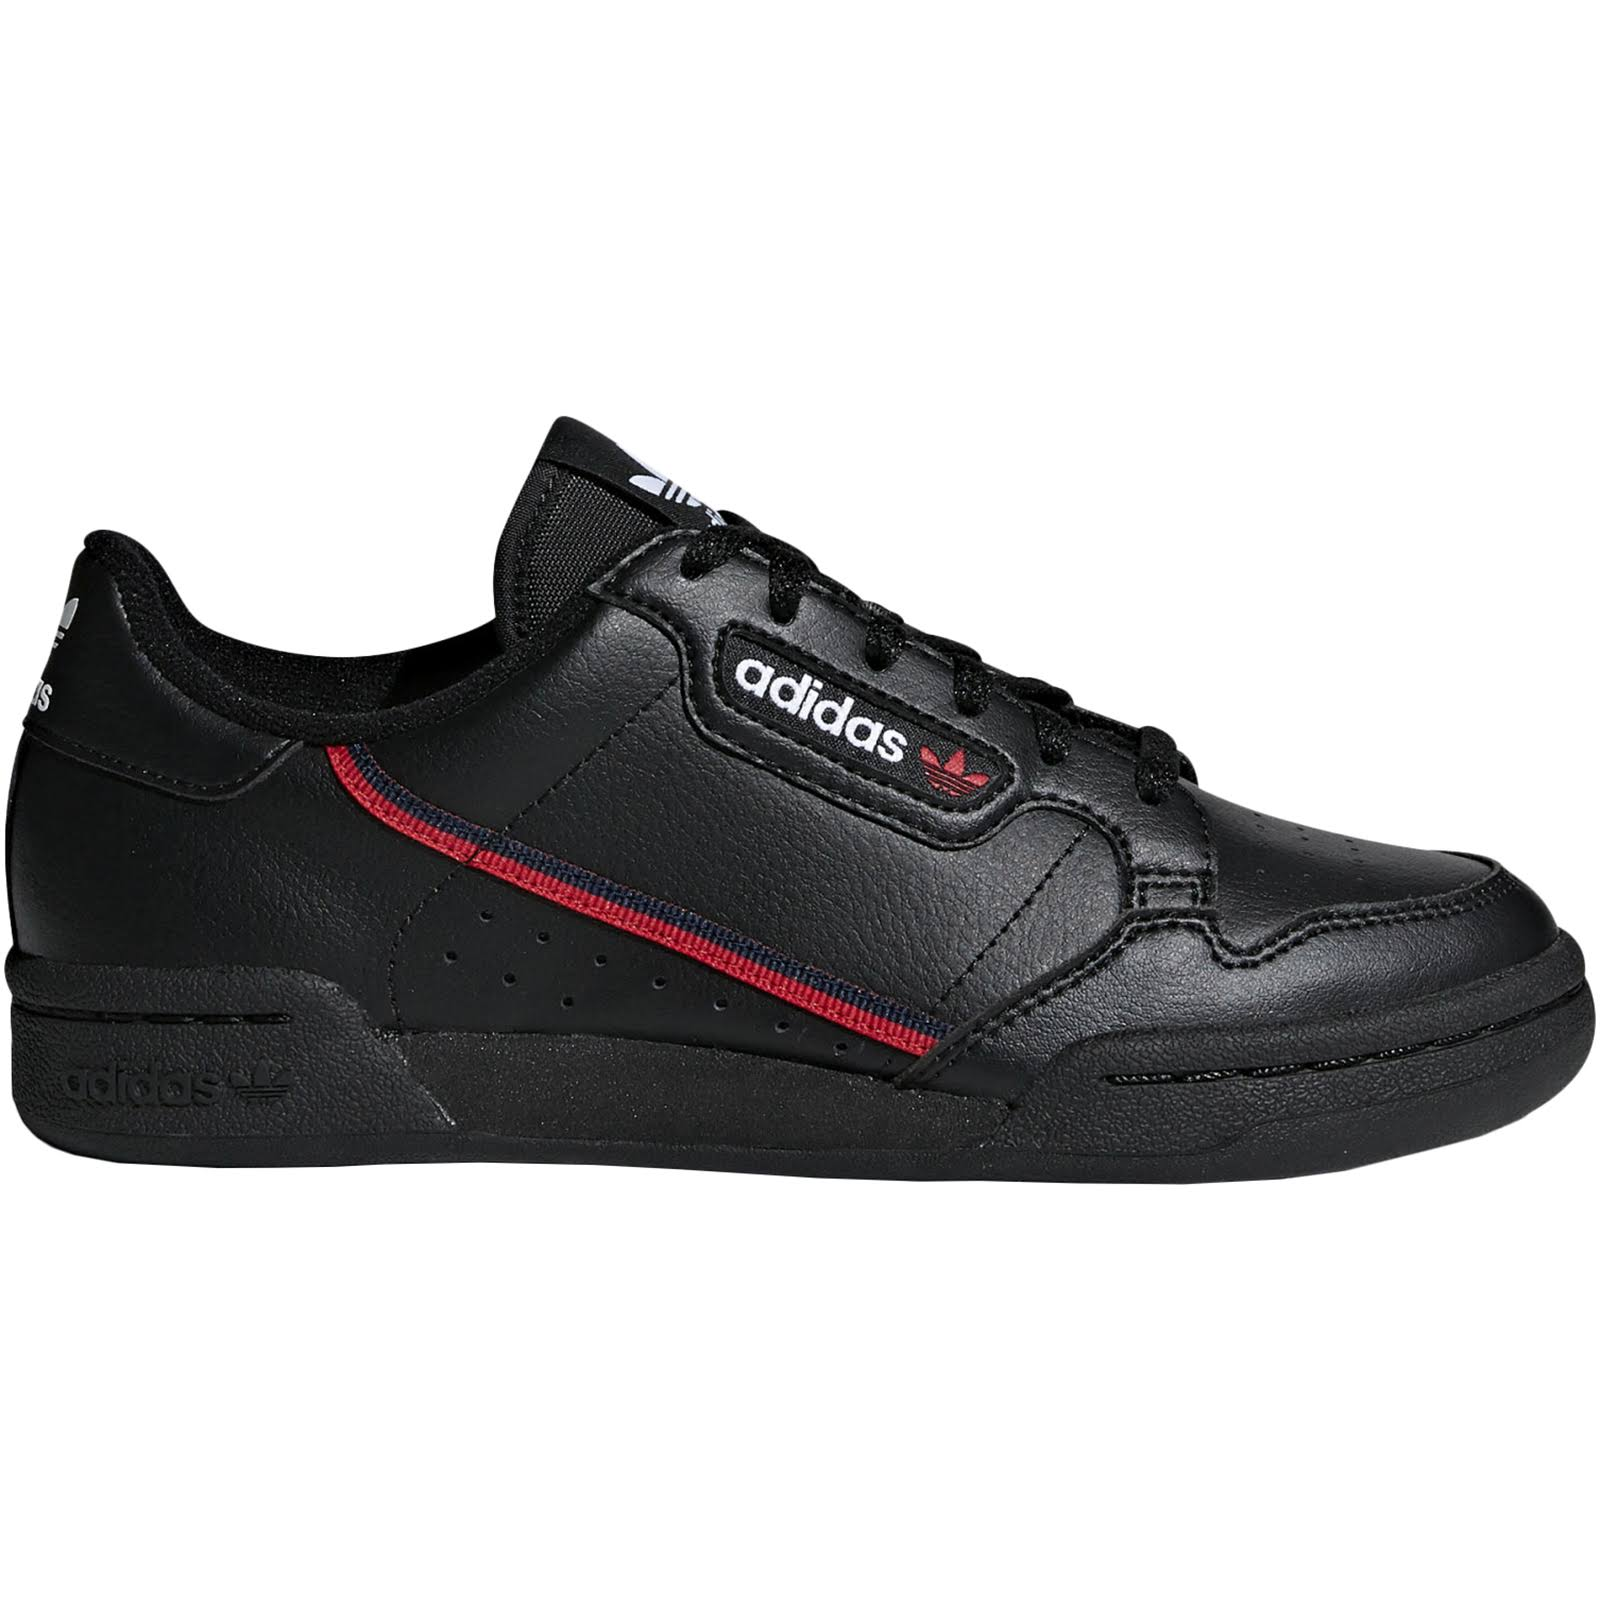 Adidas Continental 80 Shoes - Black - Kids